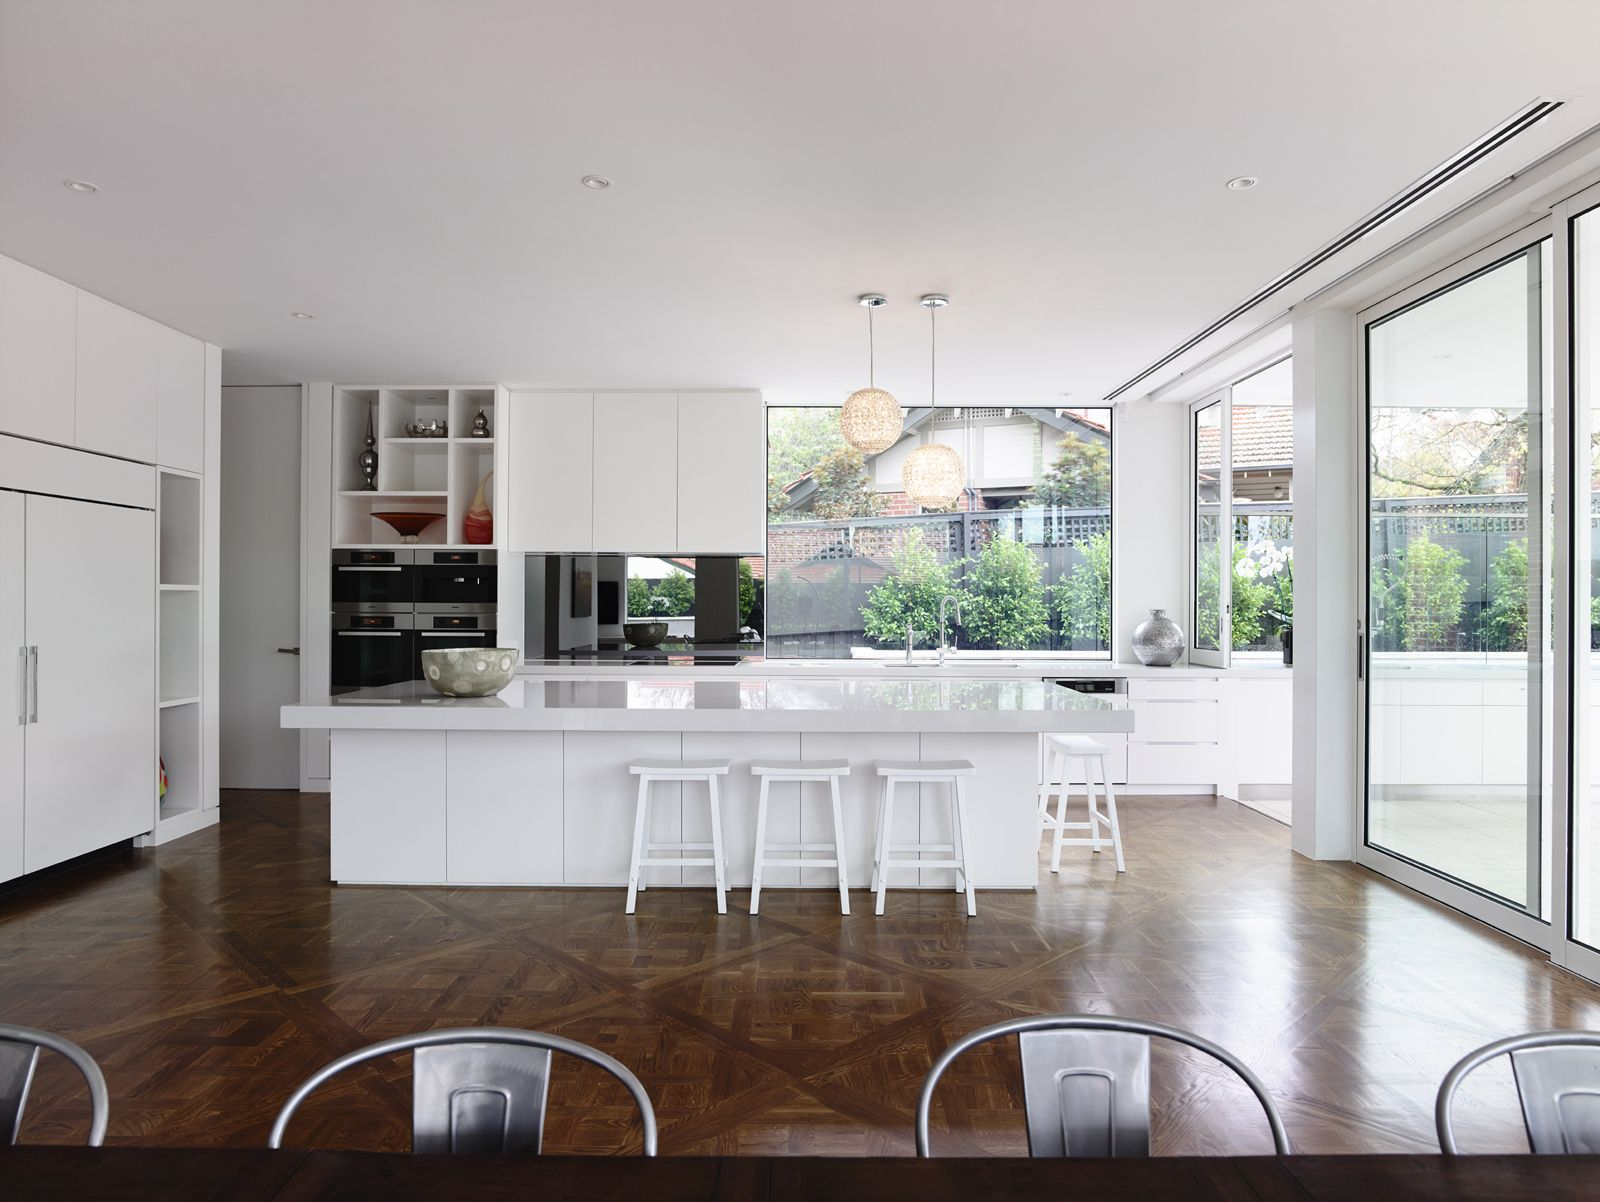 Perfect kitchen and slide doors | Home ideas | Pinterest